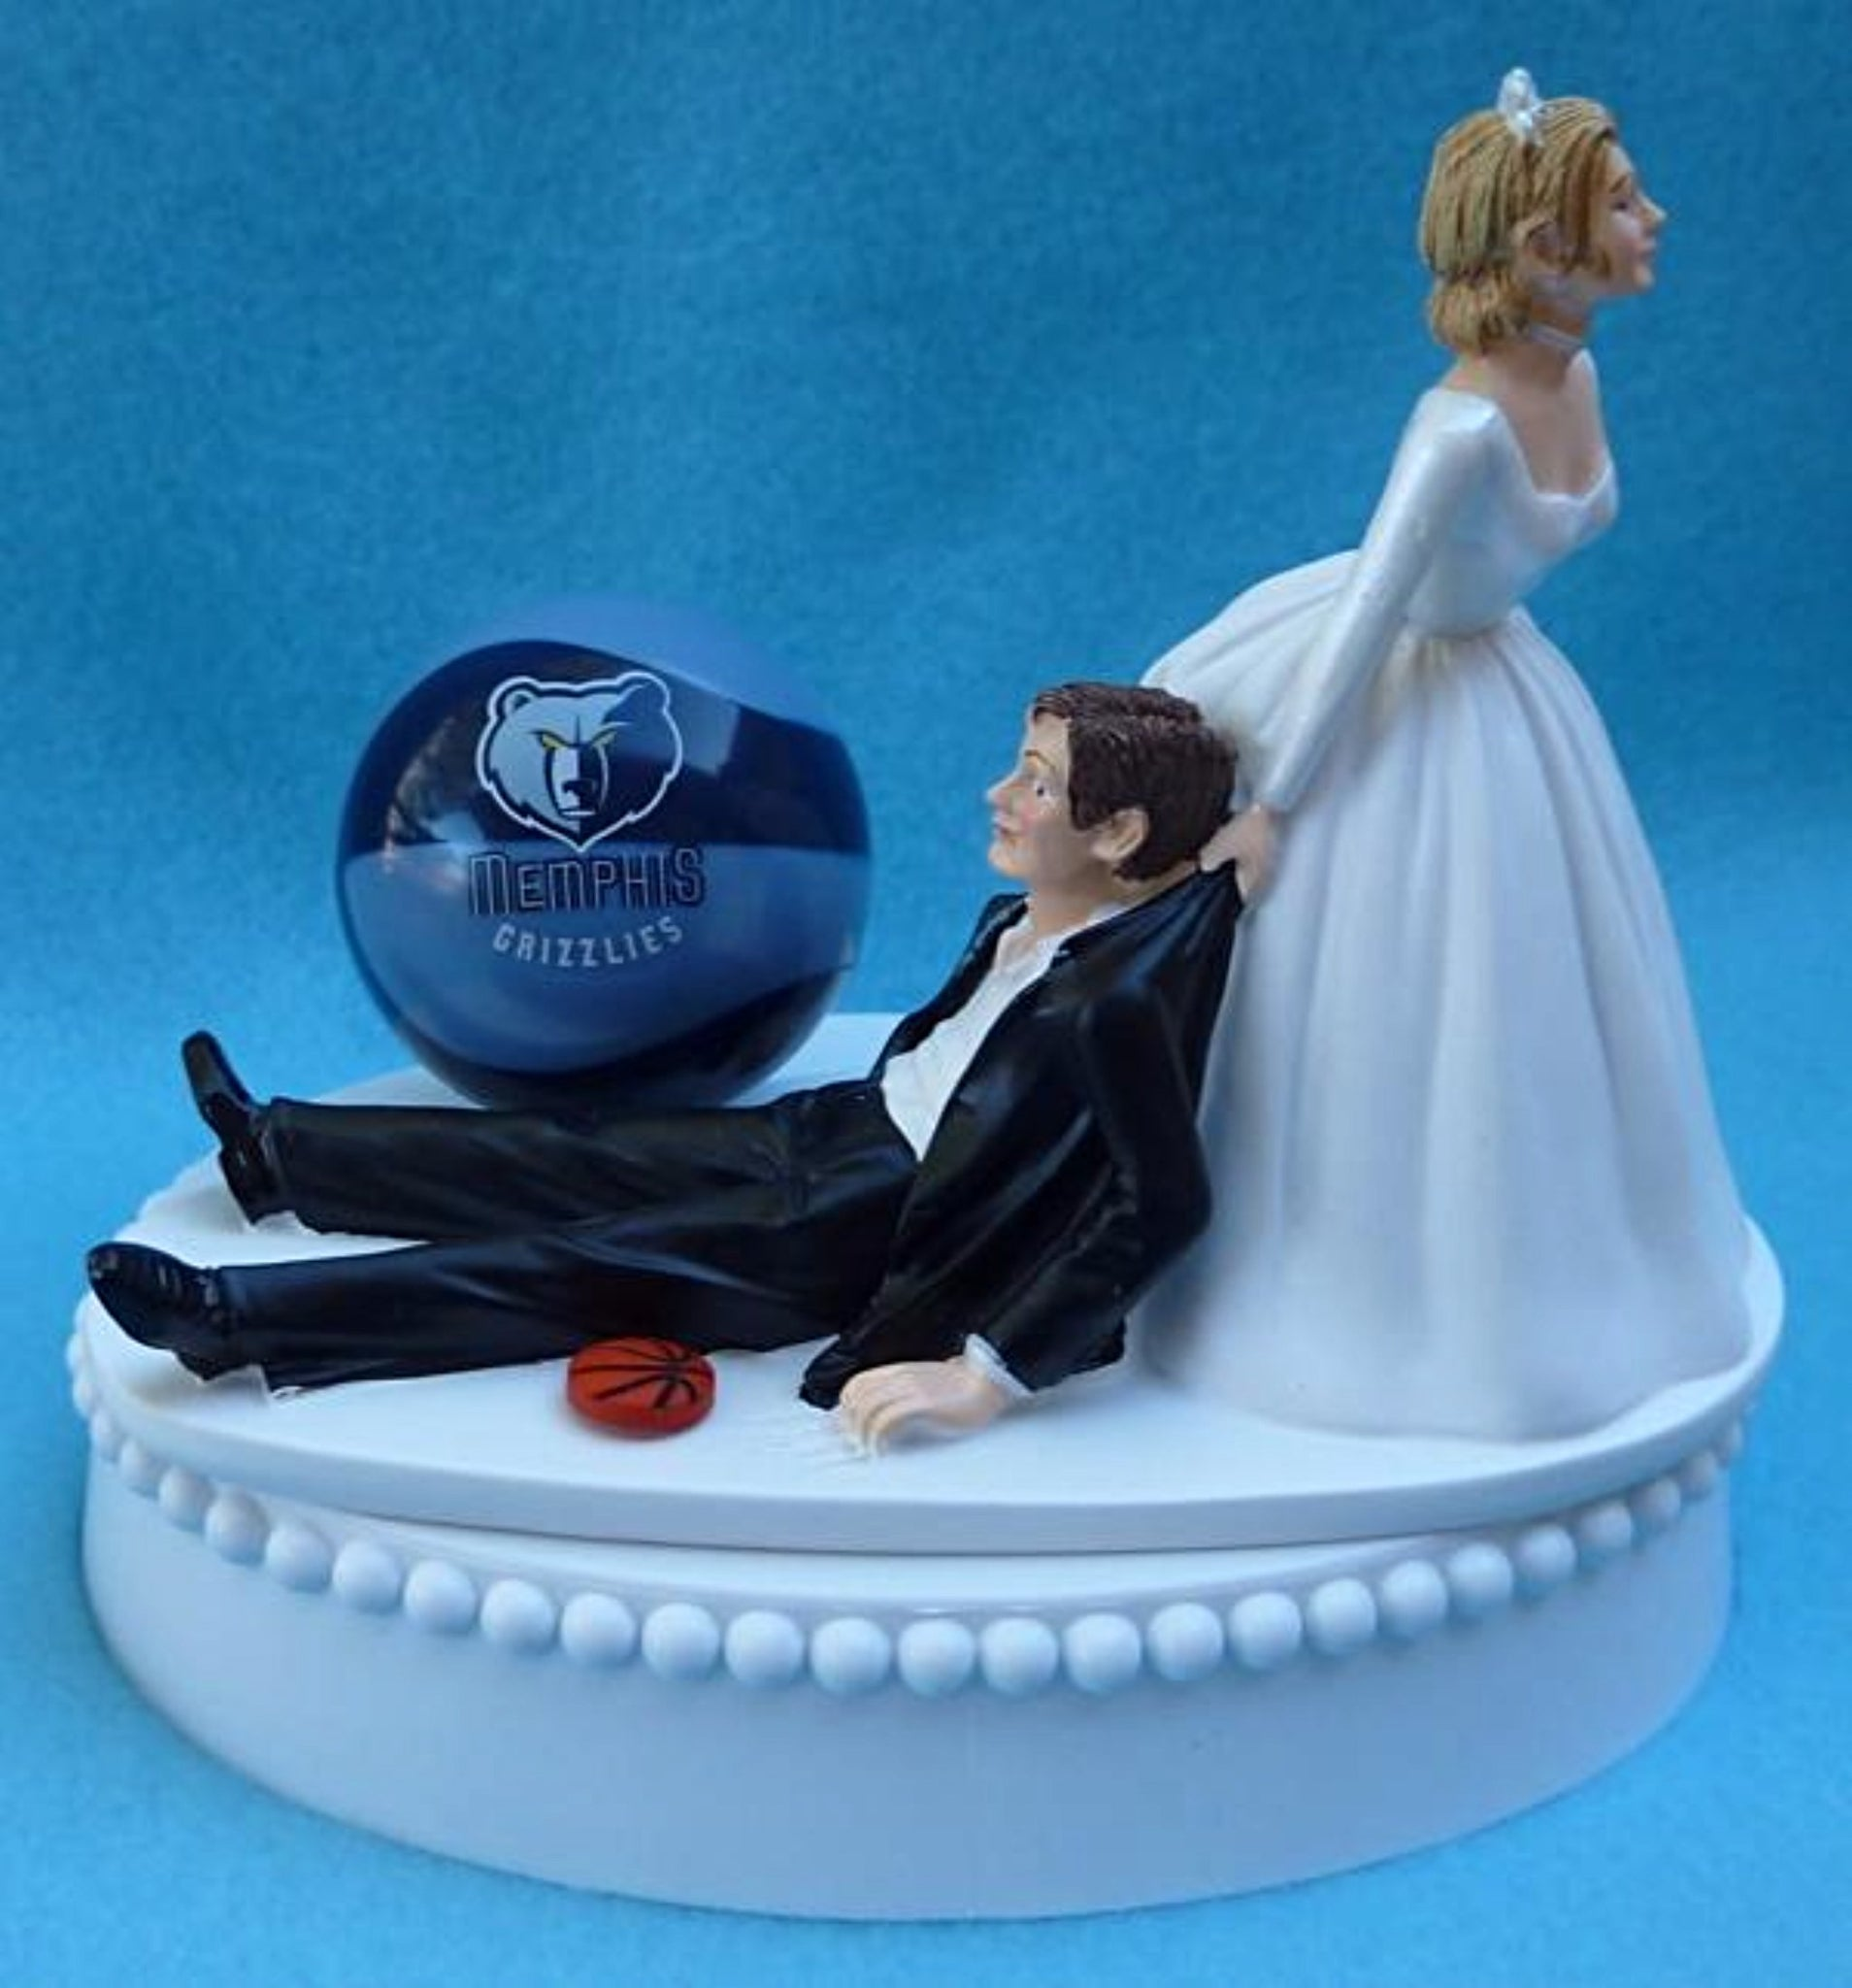 Memphis Grizzlies wedding cake topper groom's cake top humorous bride dragging groom funny unique sports fan fun